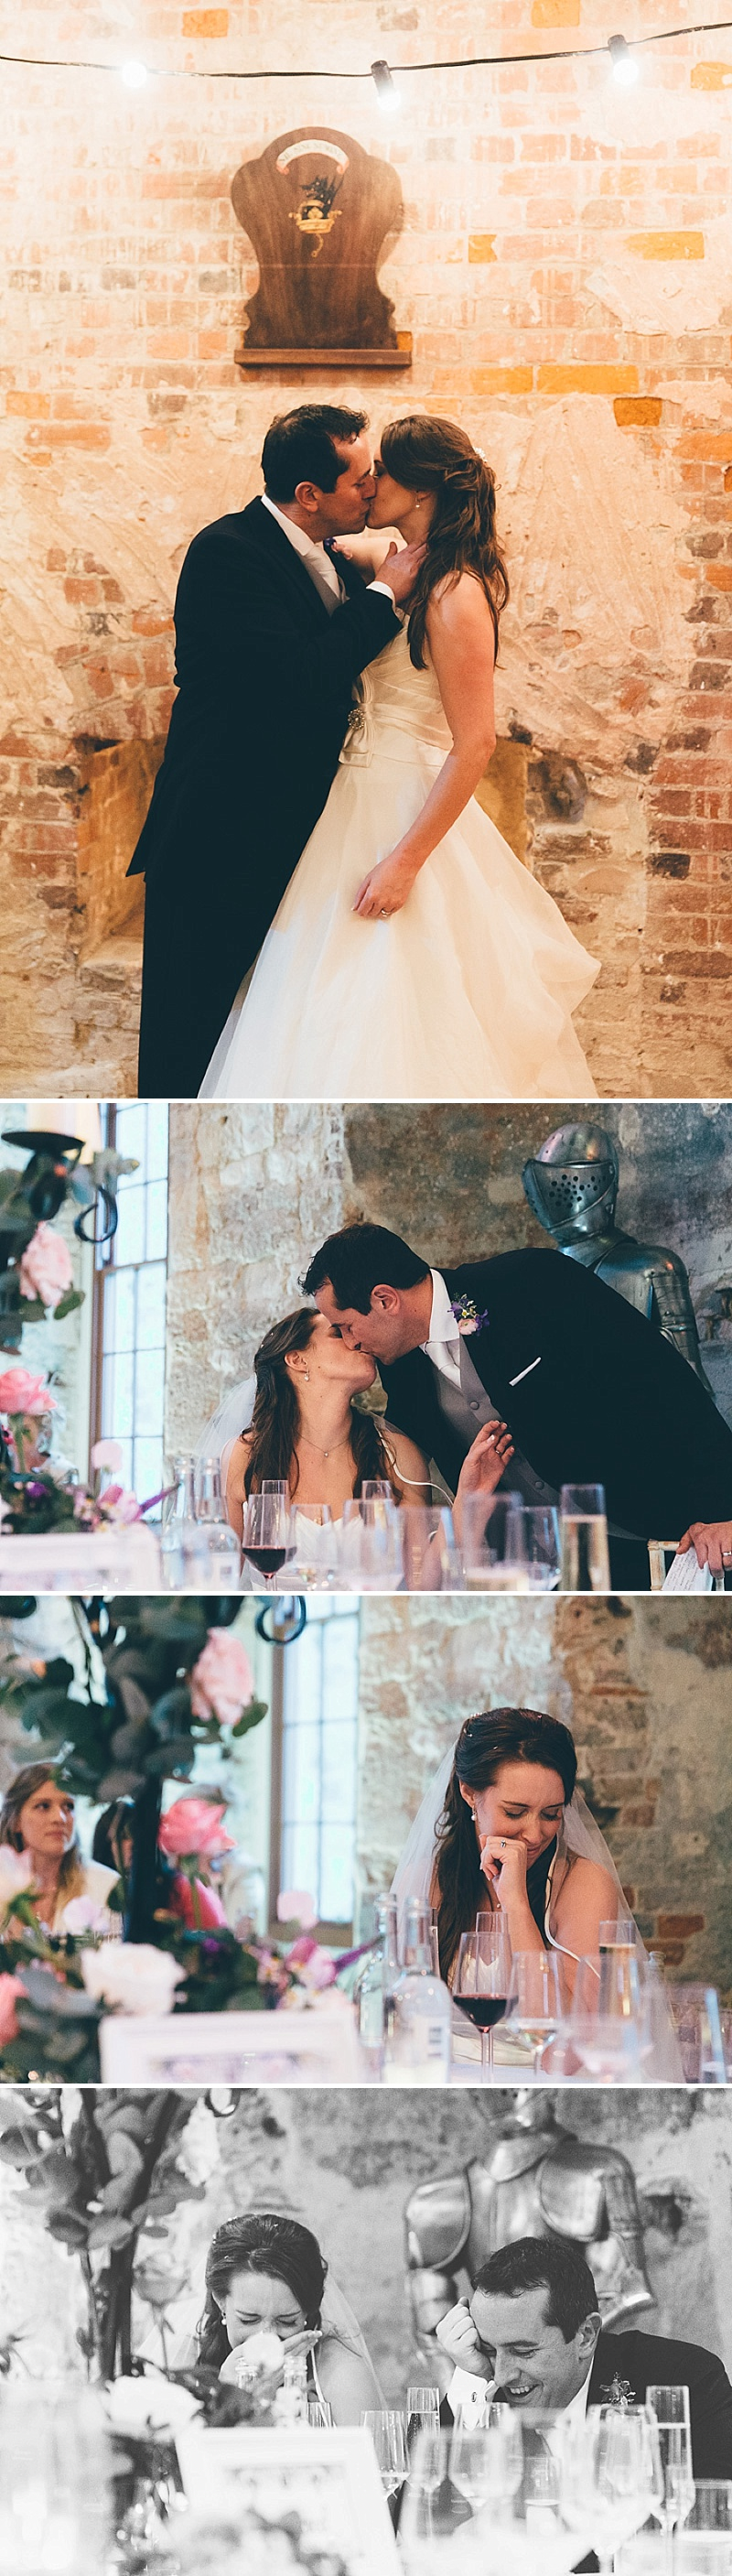 Elegant Wedding At Lulworth Castle In Dorset With Bride In Heidi By Sassi Holford And Bridesmaids In Dessy With Accessories From Glitzy Secrets And Groom In Suit By Austin Reed With Images From Dorset Wedding Photographer Paul Underhill 7